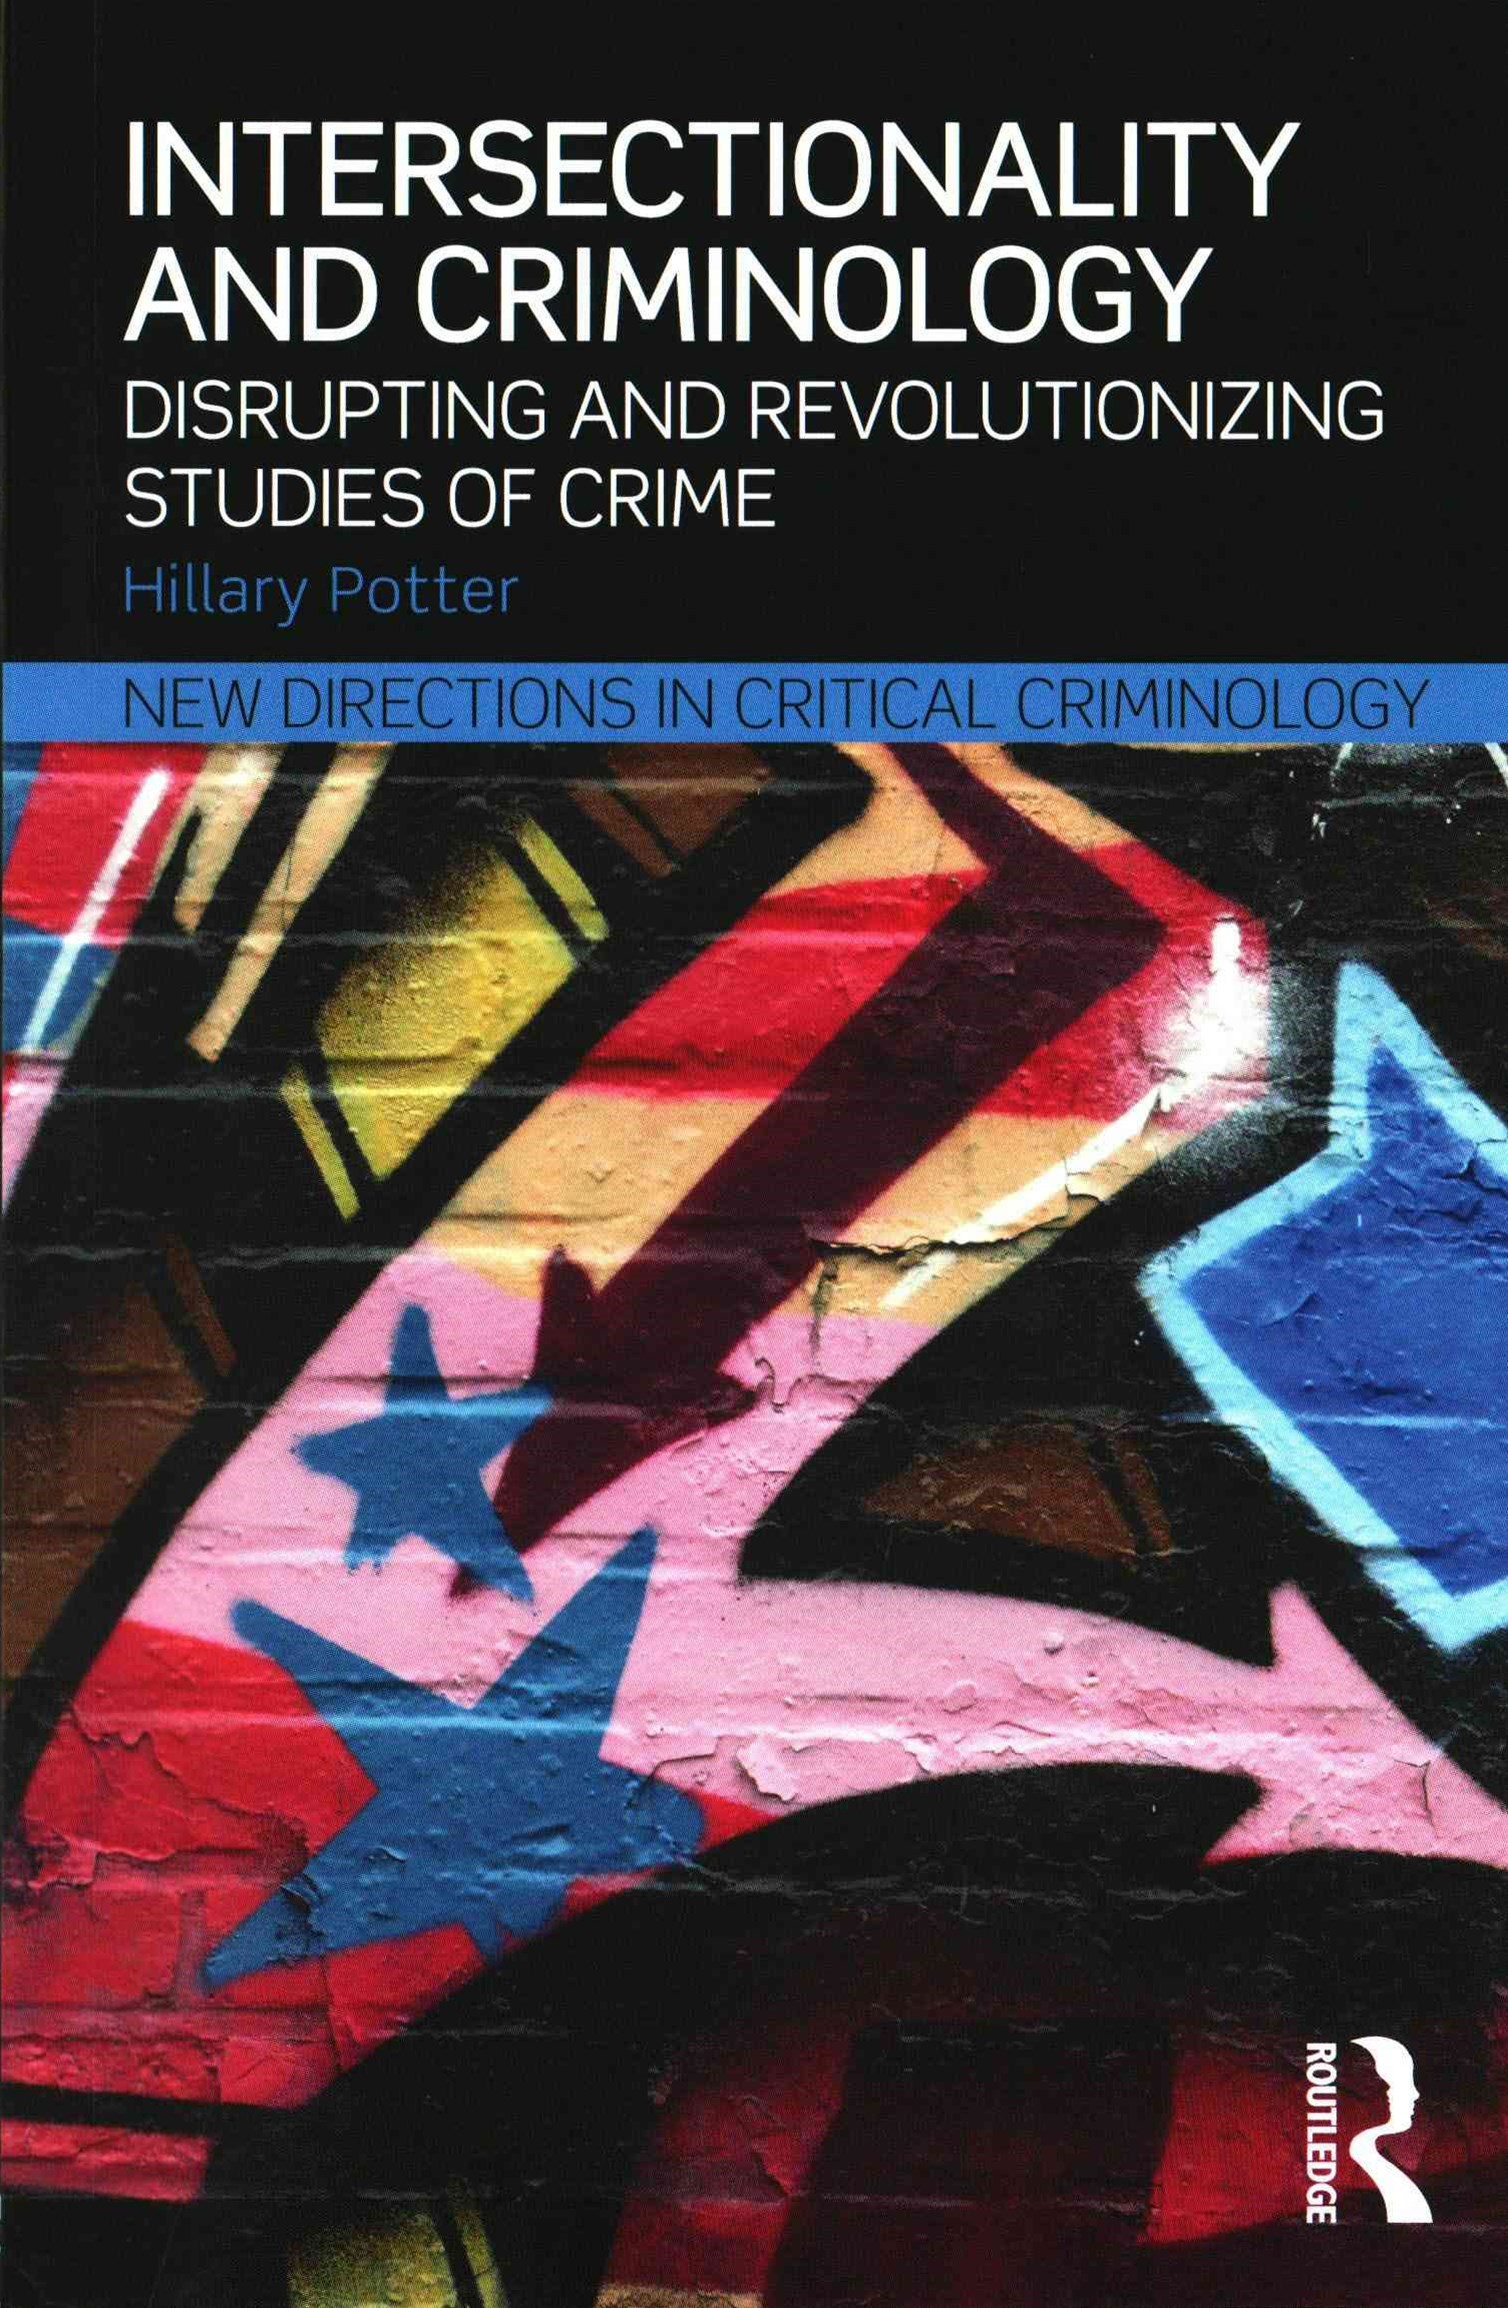 Intersectionality and Criminology